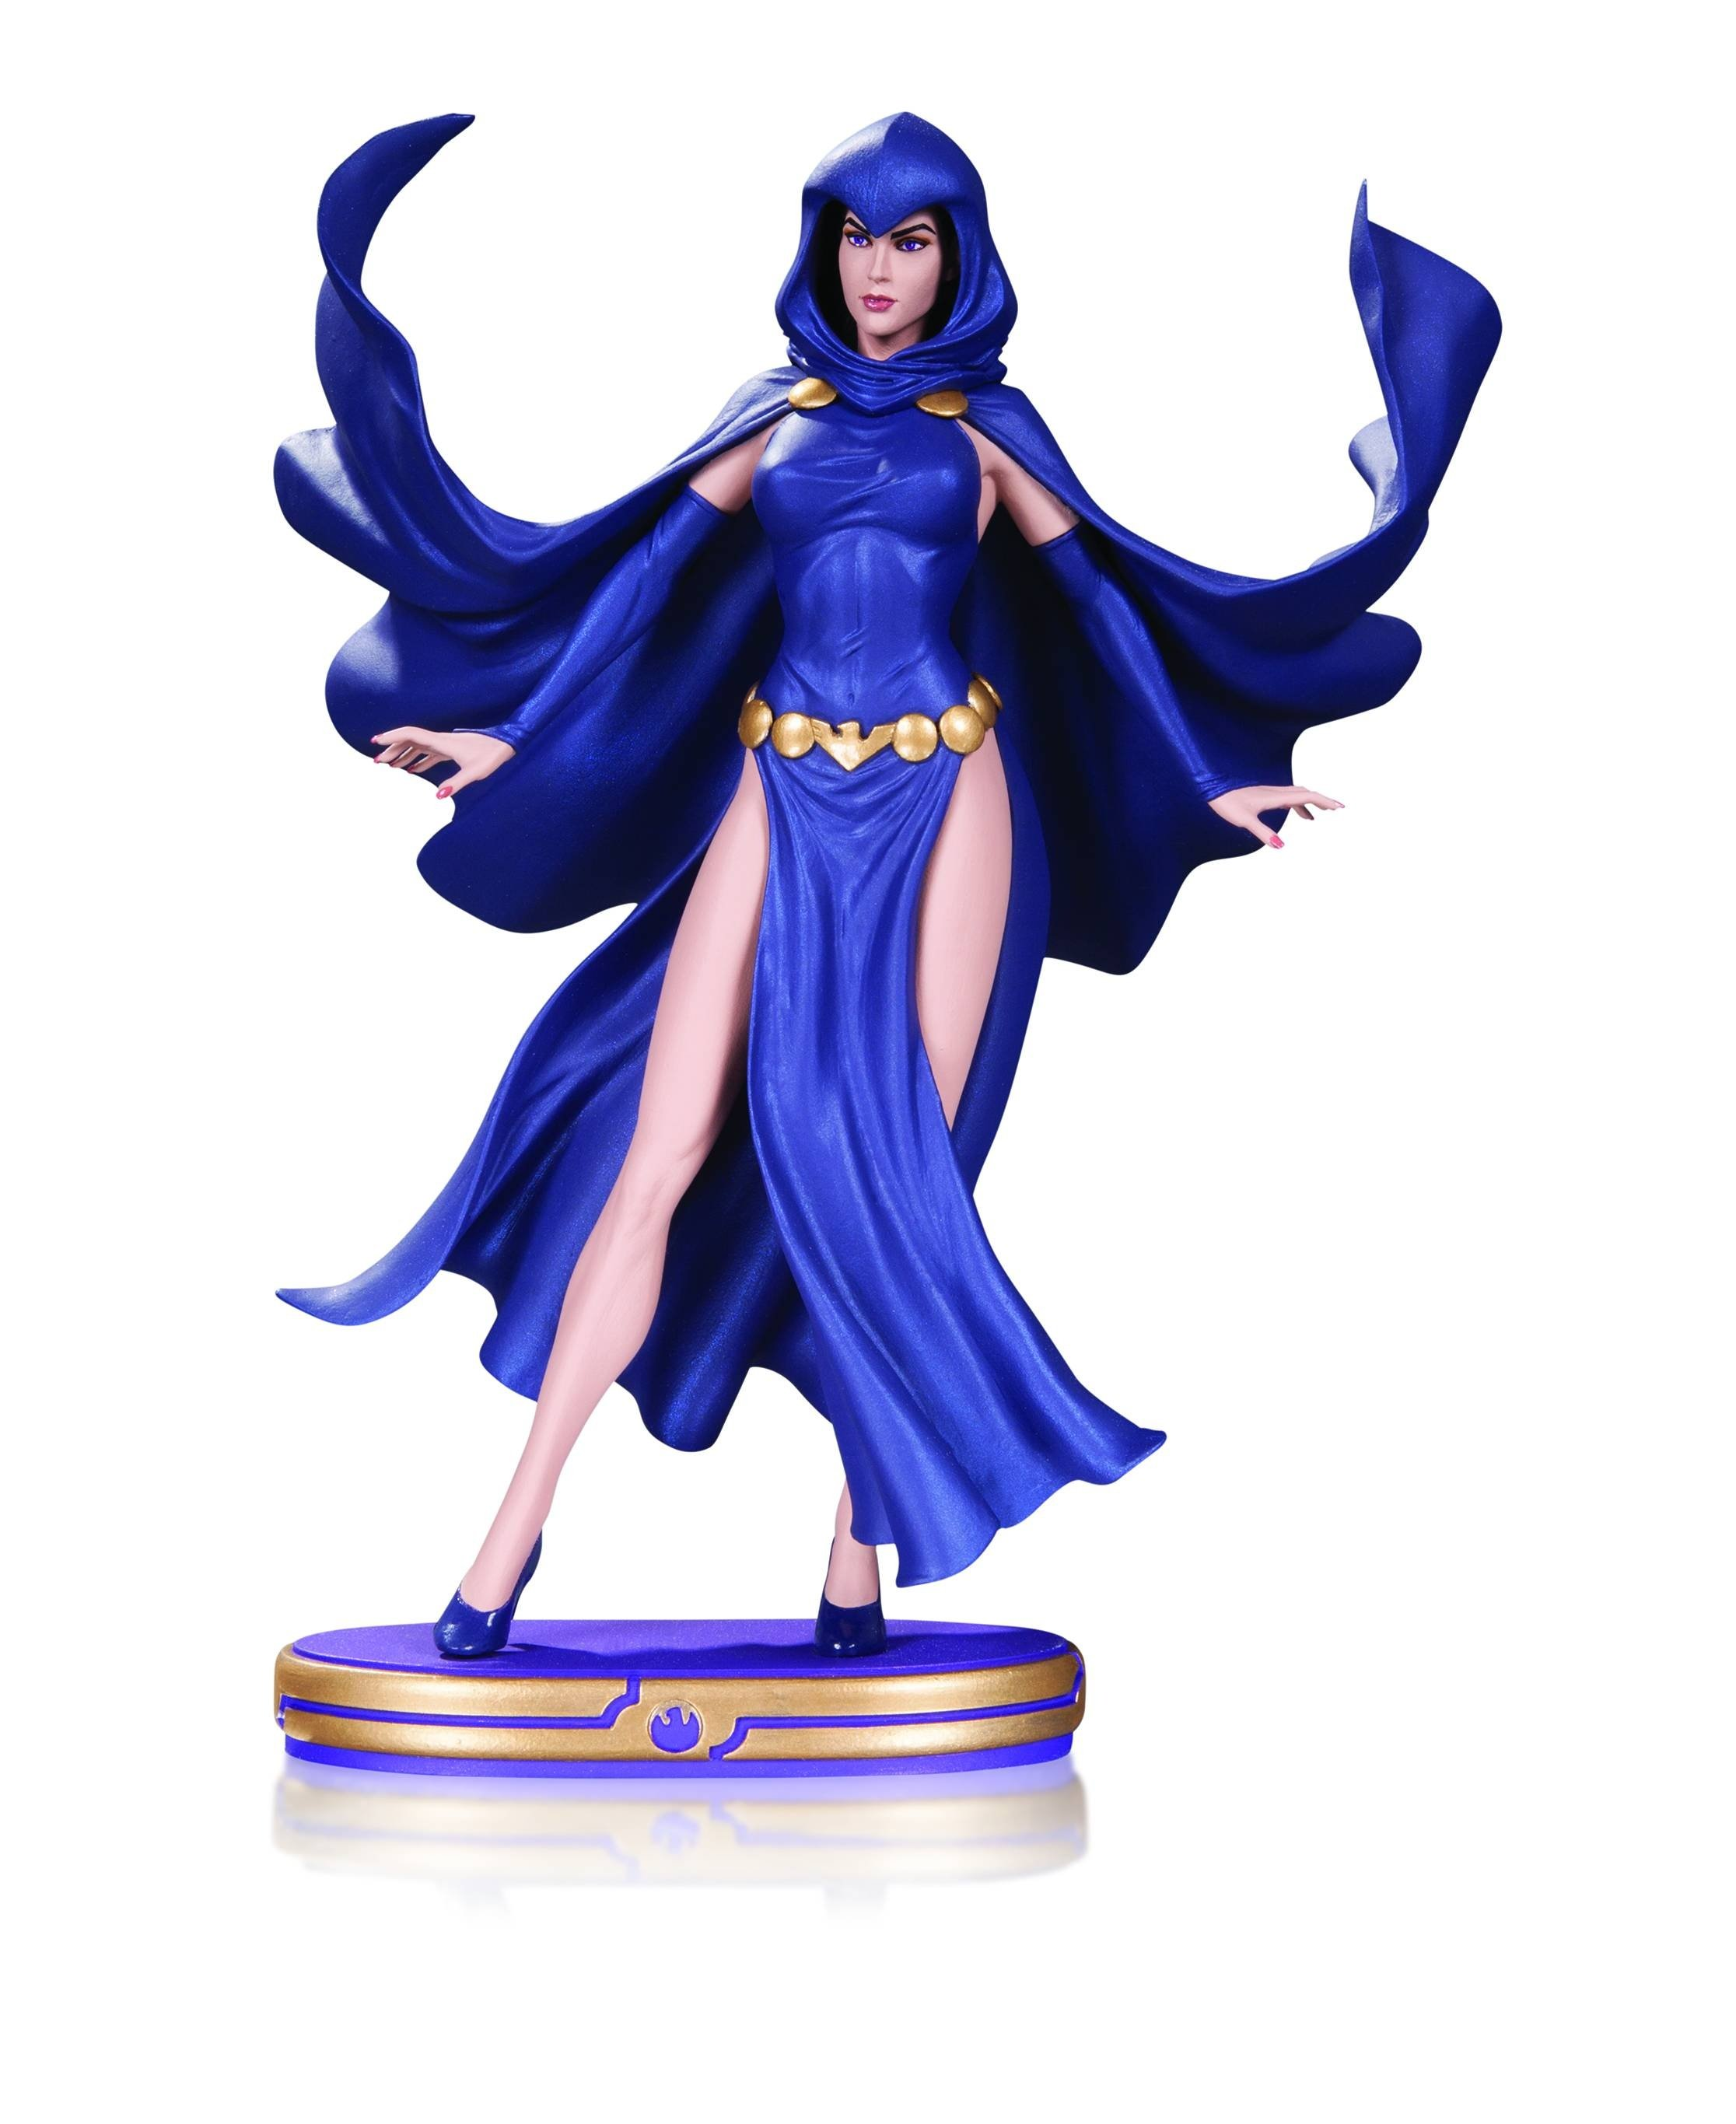 https://0901.nccdn.net/4_2/000/000/056/7dc/DC-COMICS-COVER-GIRLS-RAVEN-STATUE-2232x2731.jpg